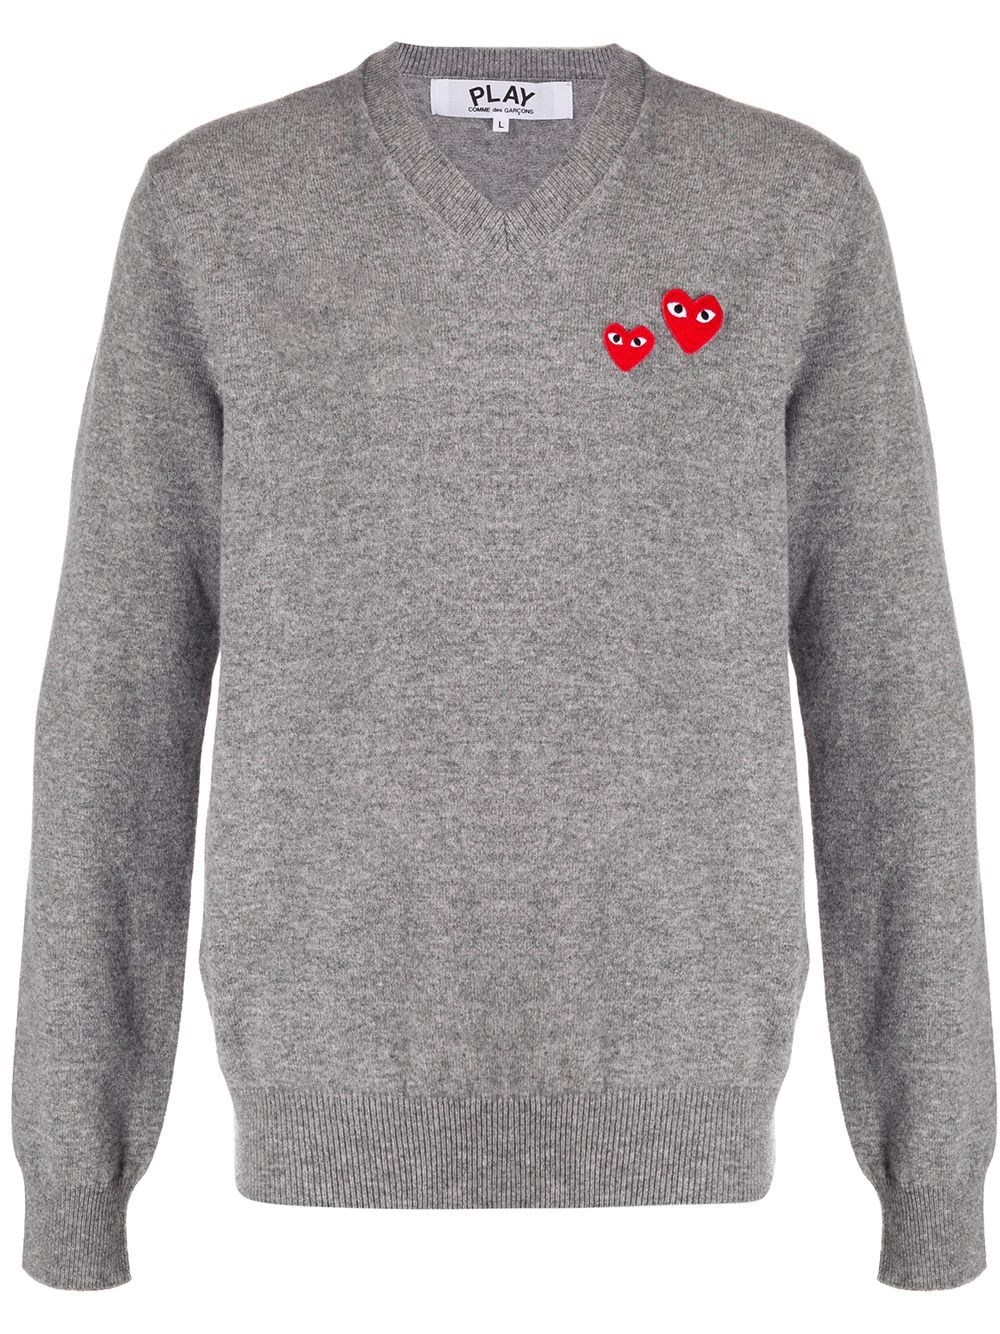 COMME DES GARCONS PLAY Gray Wool Knit Sweater